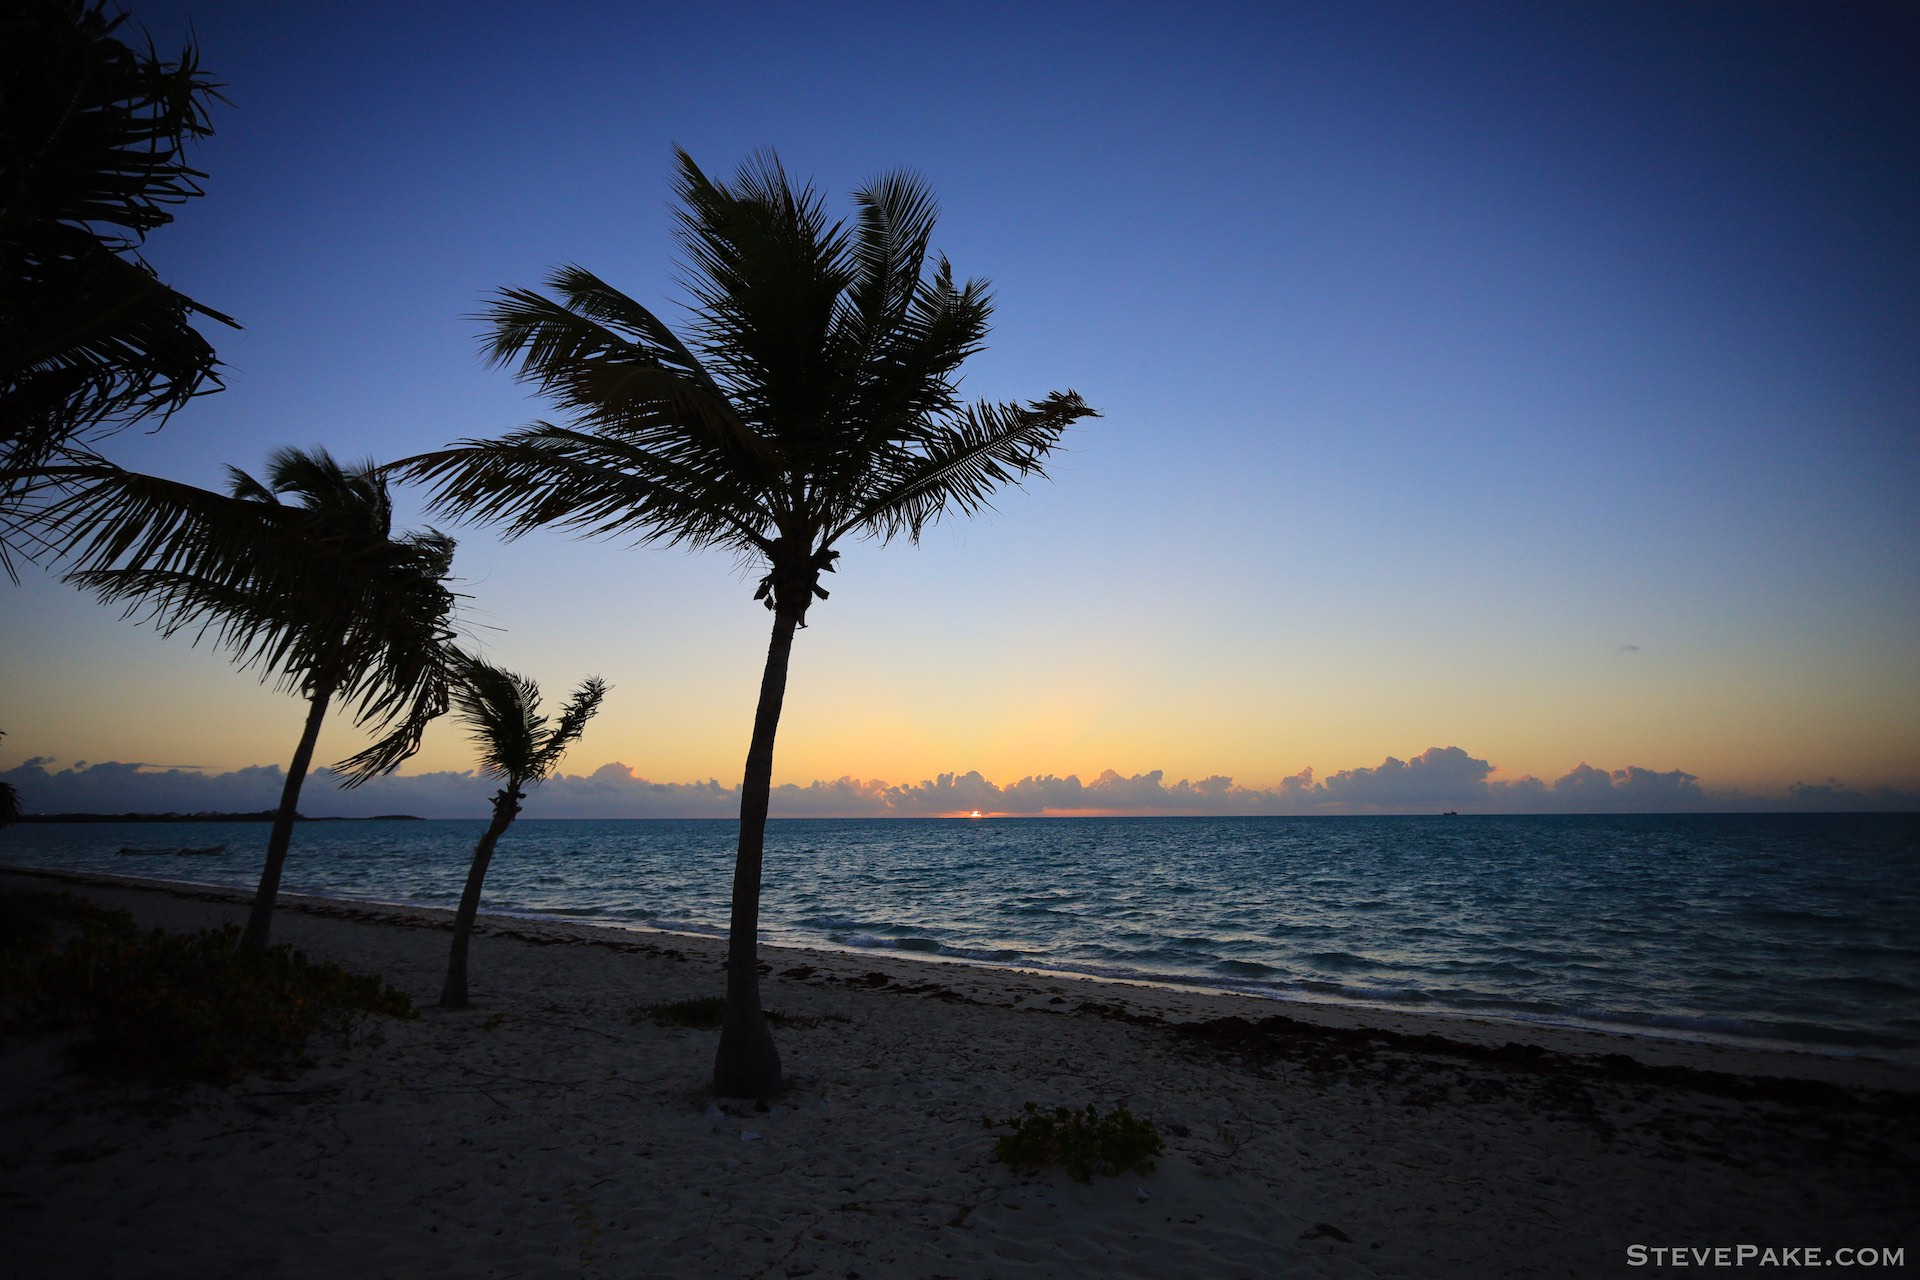 6:28am: Canon EOS RP and 17-40L, Aperture Priority, 20mm, f/4, hand cranked ISO to 400 to get 1/1250s. The winds were at 20-25 knots, so I wanted to keep the shutter speed fast to help freeze the palm trees.